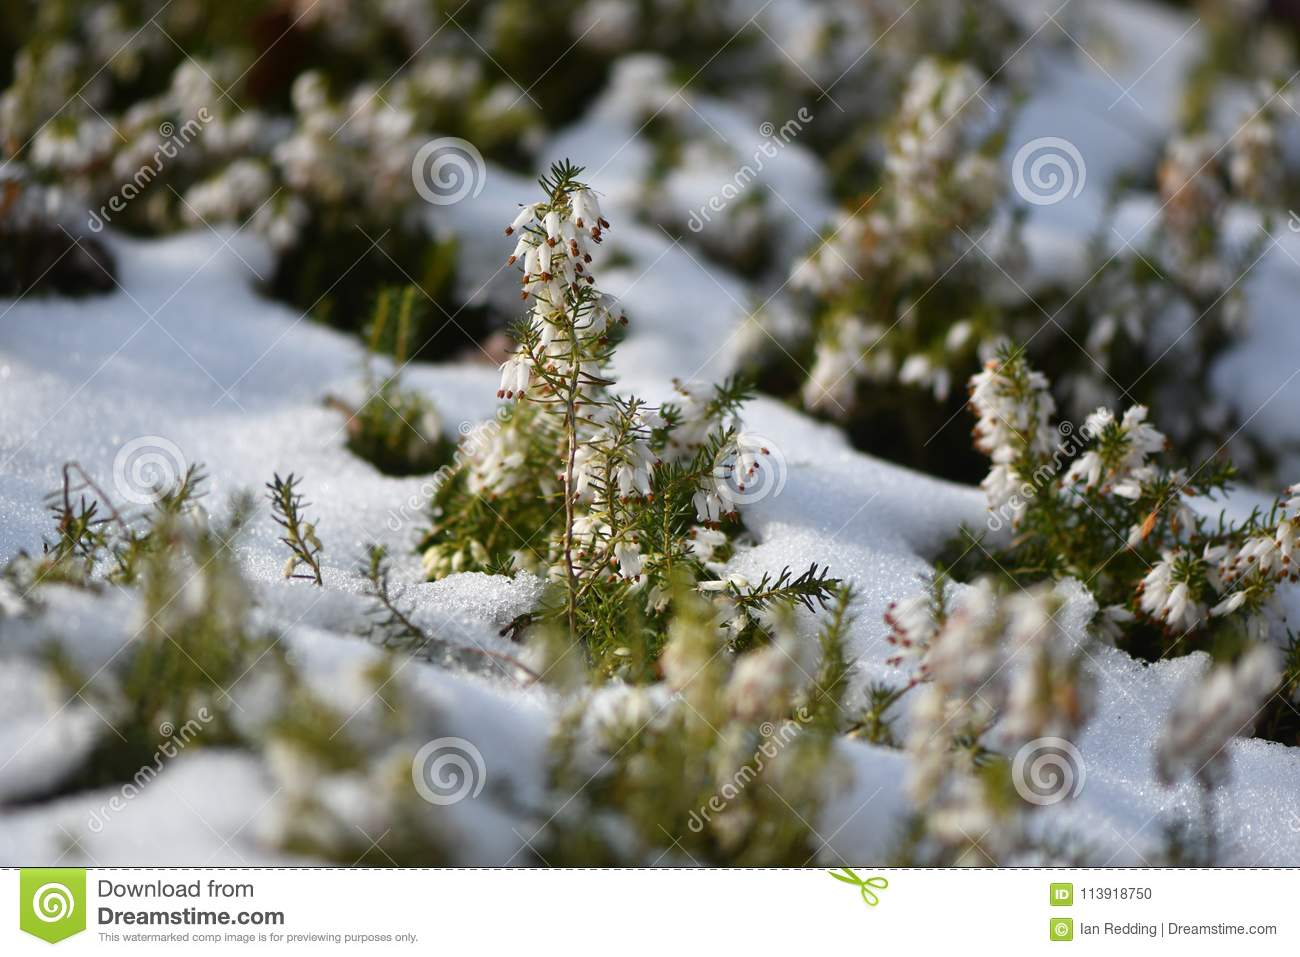 White heather x28erica sp x29 flowering in the snow stock white flowers of a common heather plant in the family ericaceae mightylinksfo